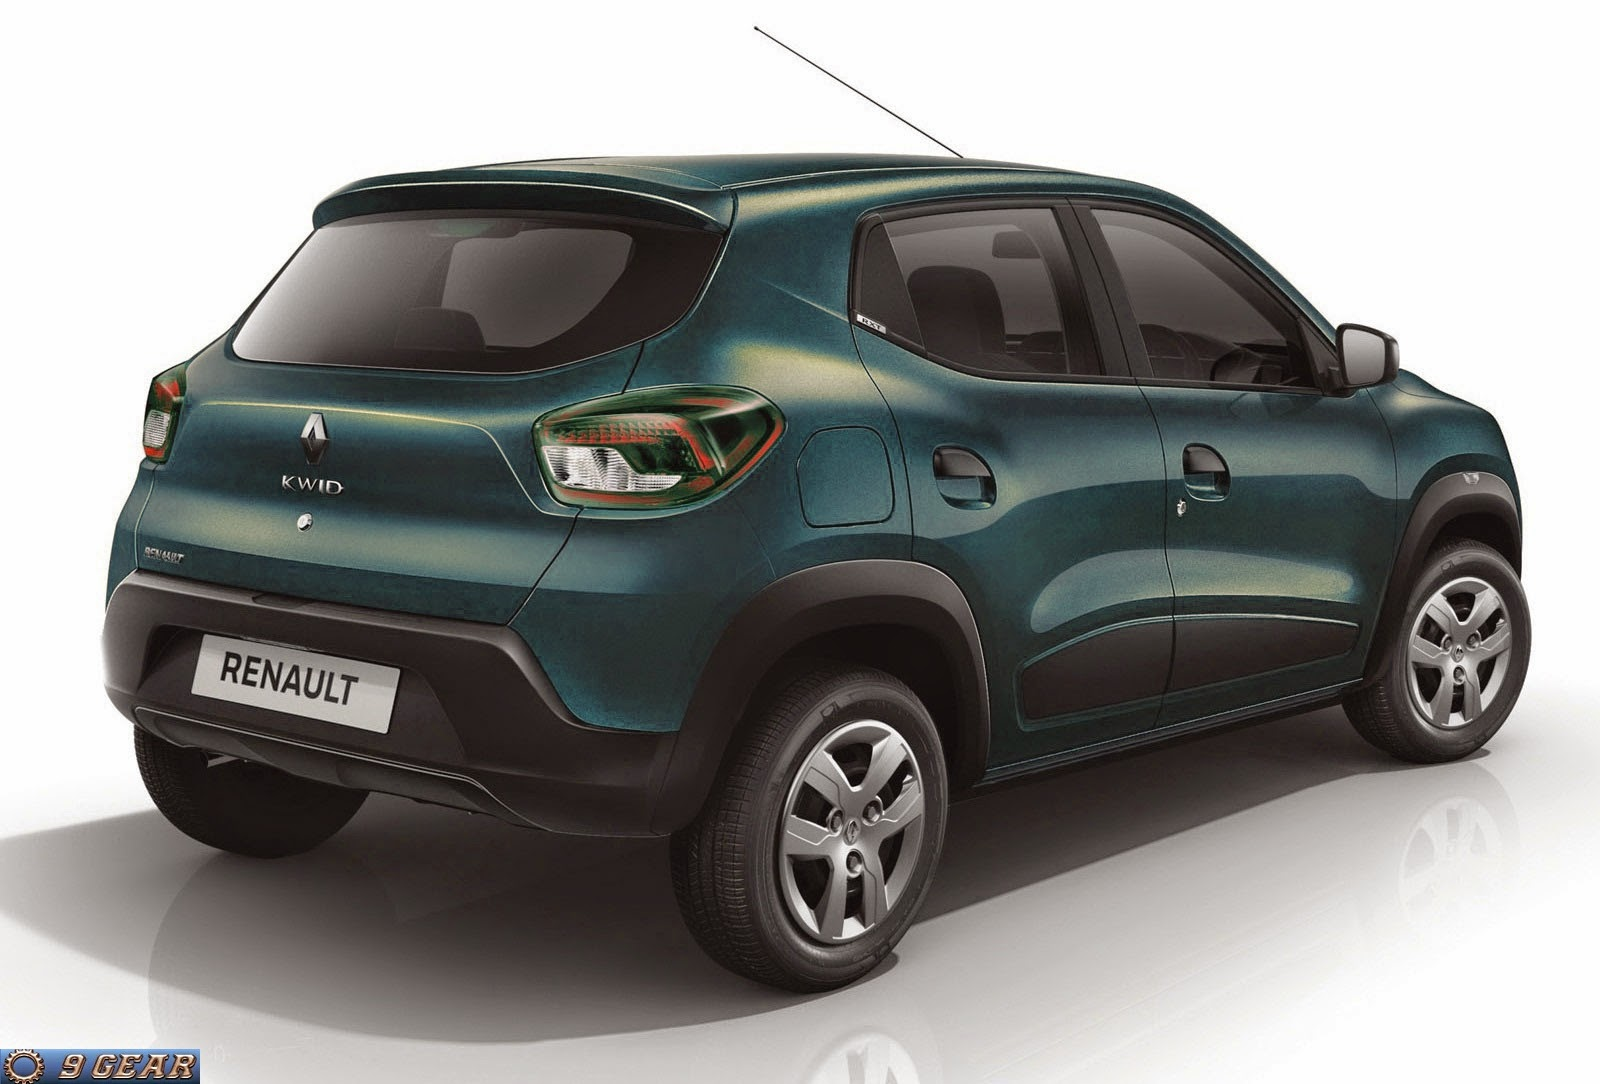 renault unveils small car kwid in india car reviews new car pictures for 2018 2019. Black Bedroom Furniture Sets. Home Design Ideas